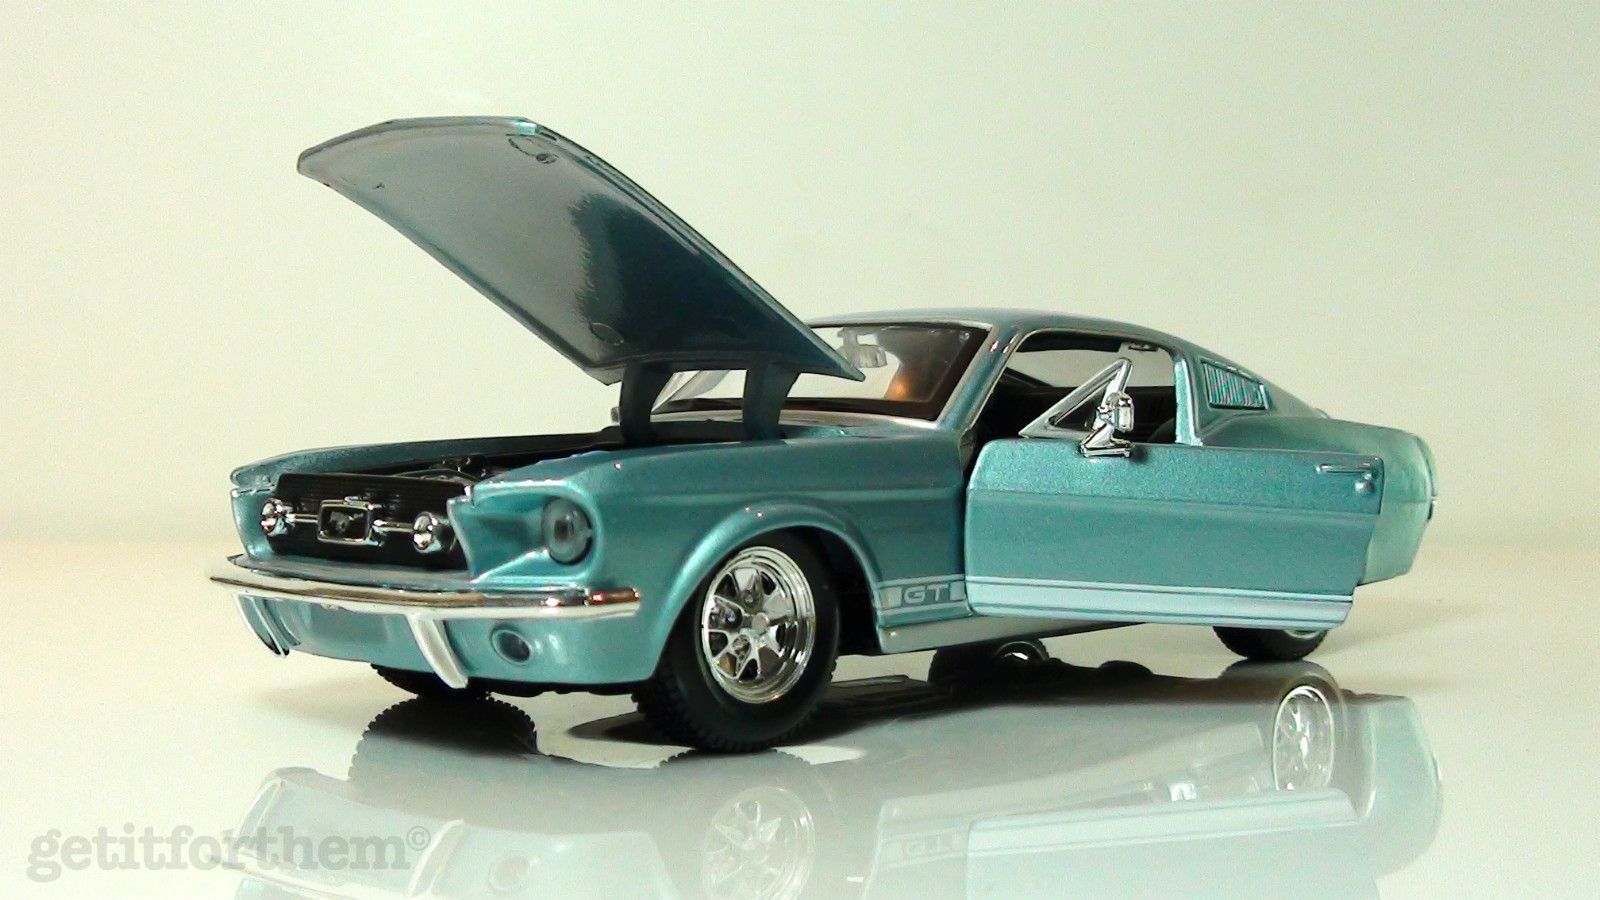 1967 Ford Mustang Gt 289 Fastback Frost Turquoise Toy Car 1 24 New